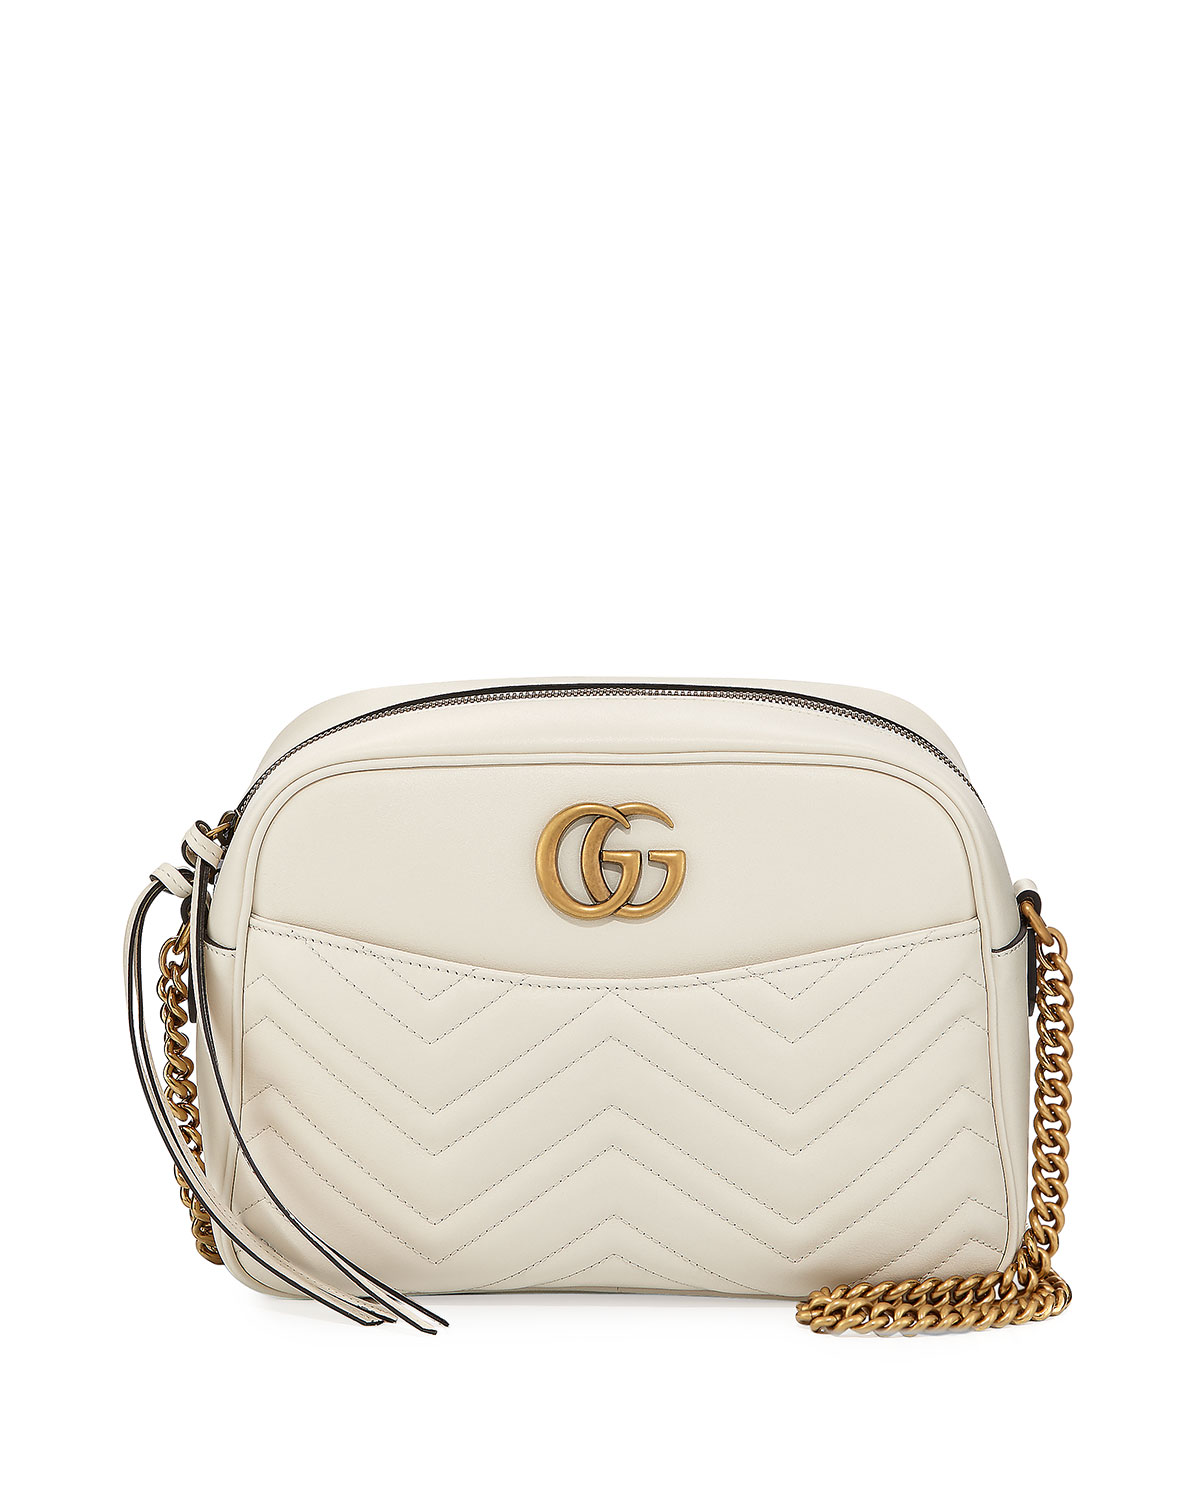 8d068aaf5dc8 Gucci GG Marmont 2.0 Medium Quilted Camera Bag, White | Neiman Marcus